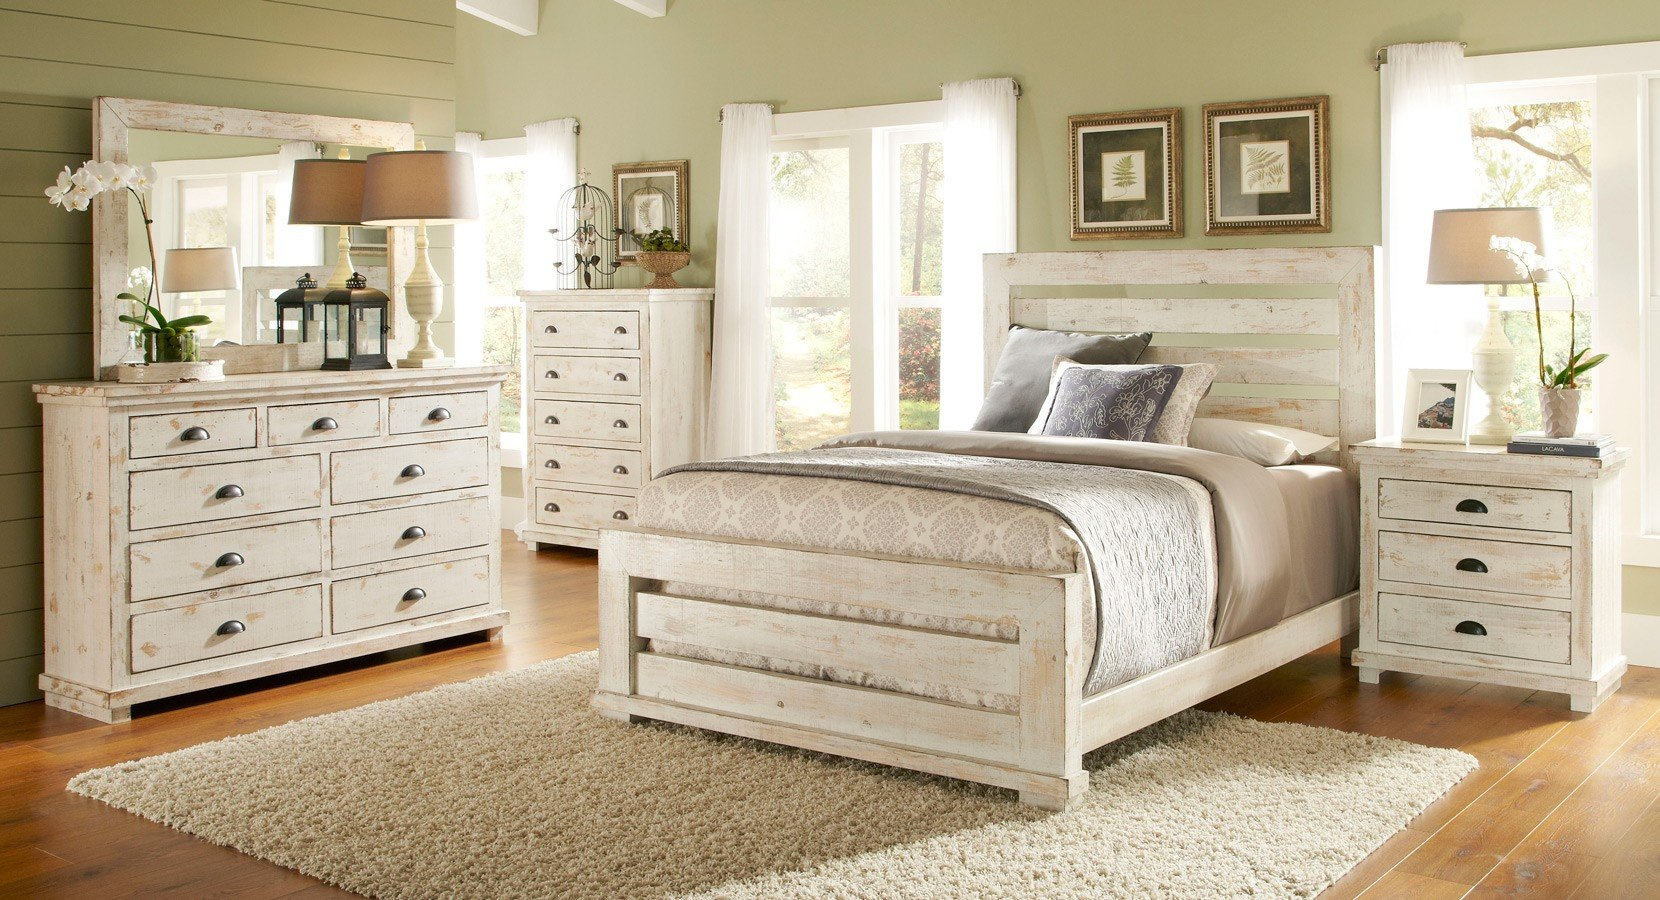 Willow Slat Bedroom Set Distressed White Progressive Furniture